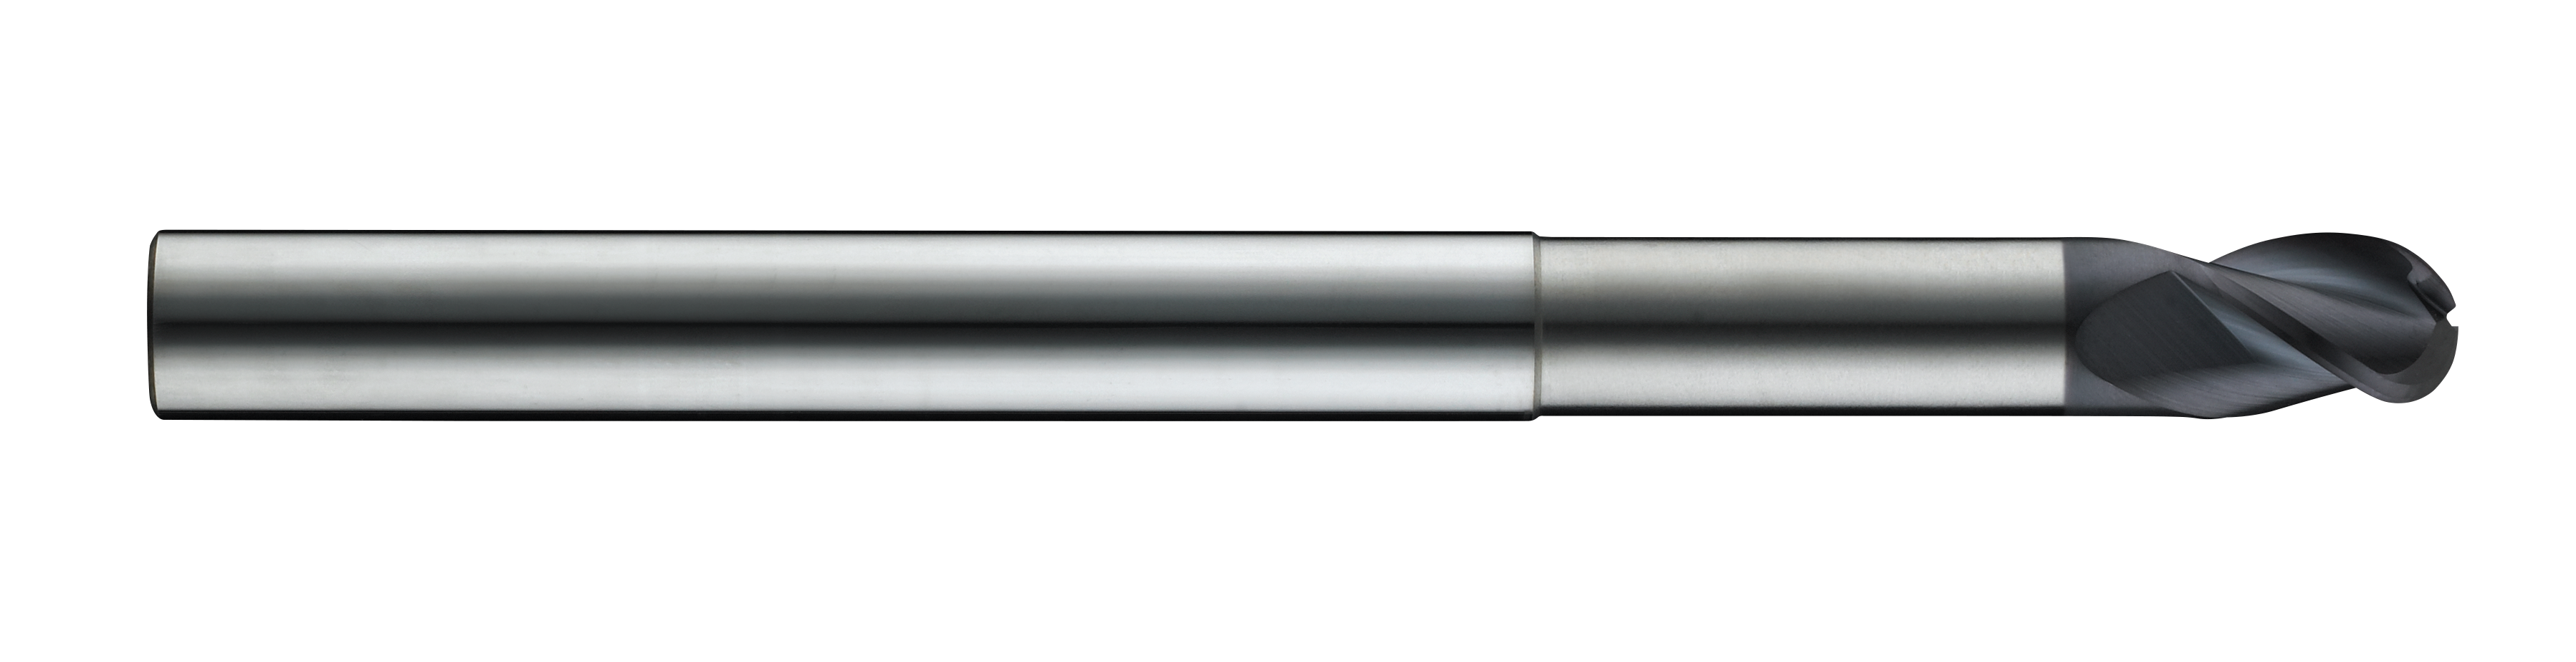 SS-BN-3 Three Flute Ball Nose End Mill